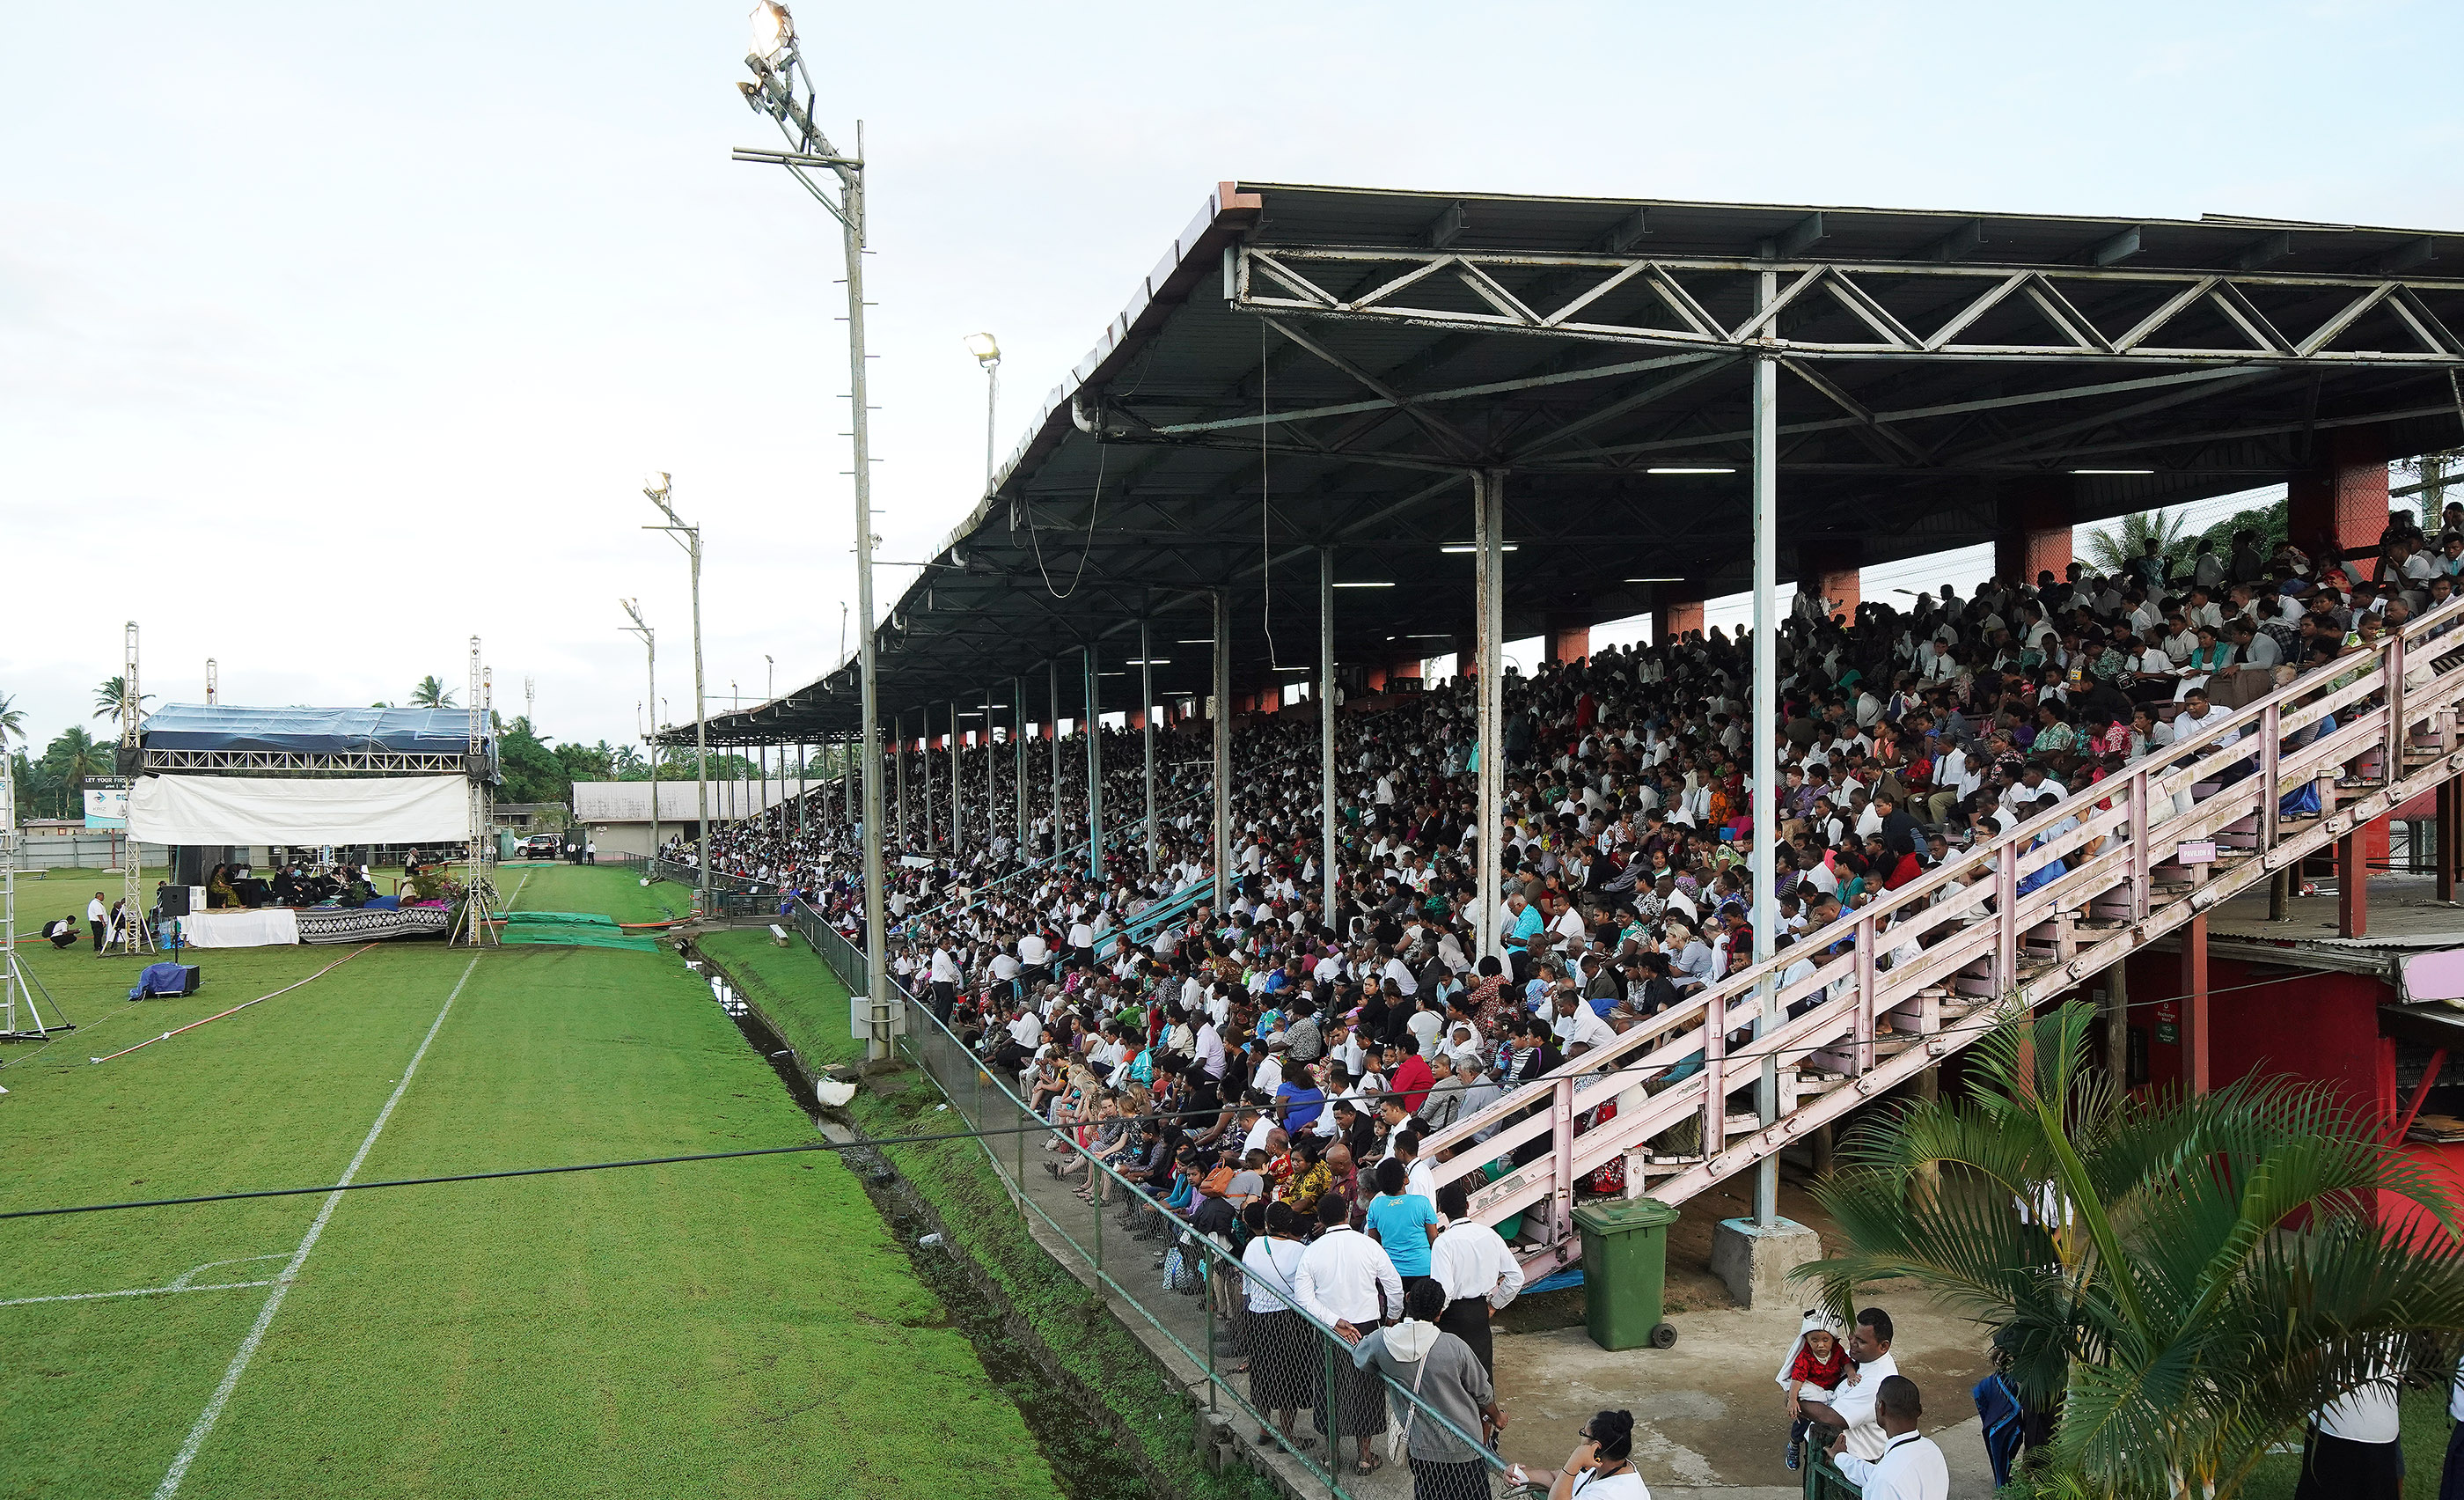 Attendees listen during a devotional at Ratu Cakobau stadium in Nausori, Fiji on May 22, 2019.